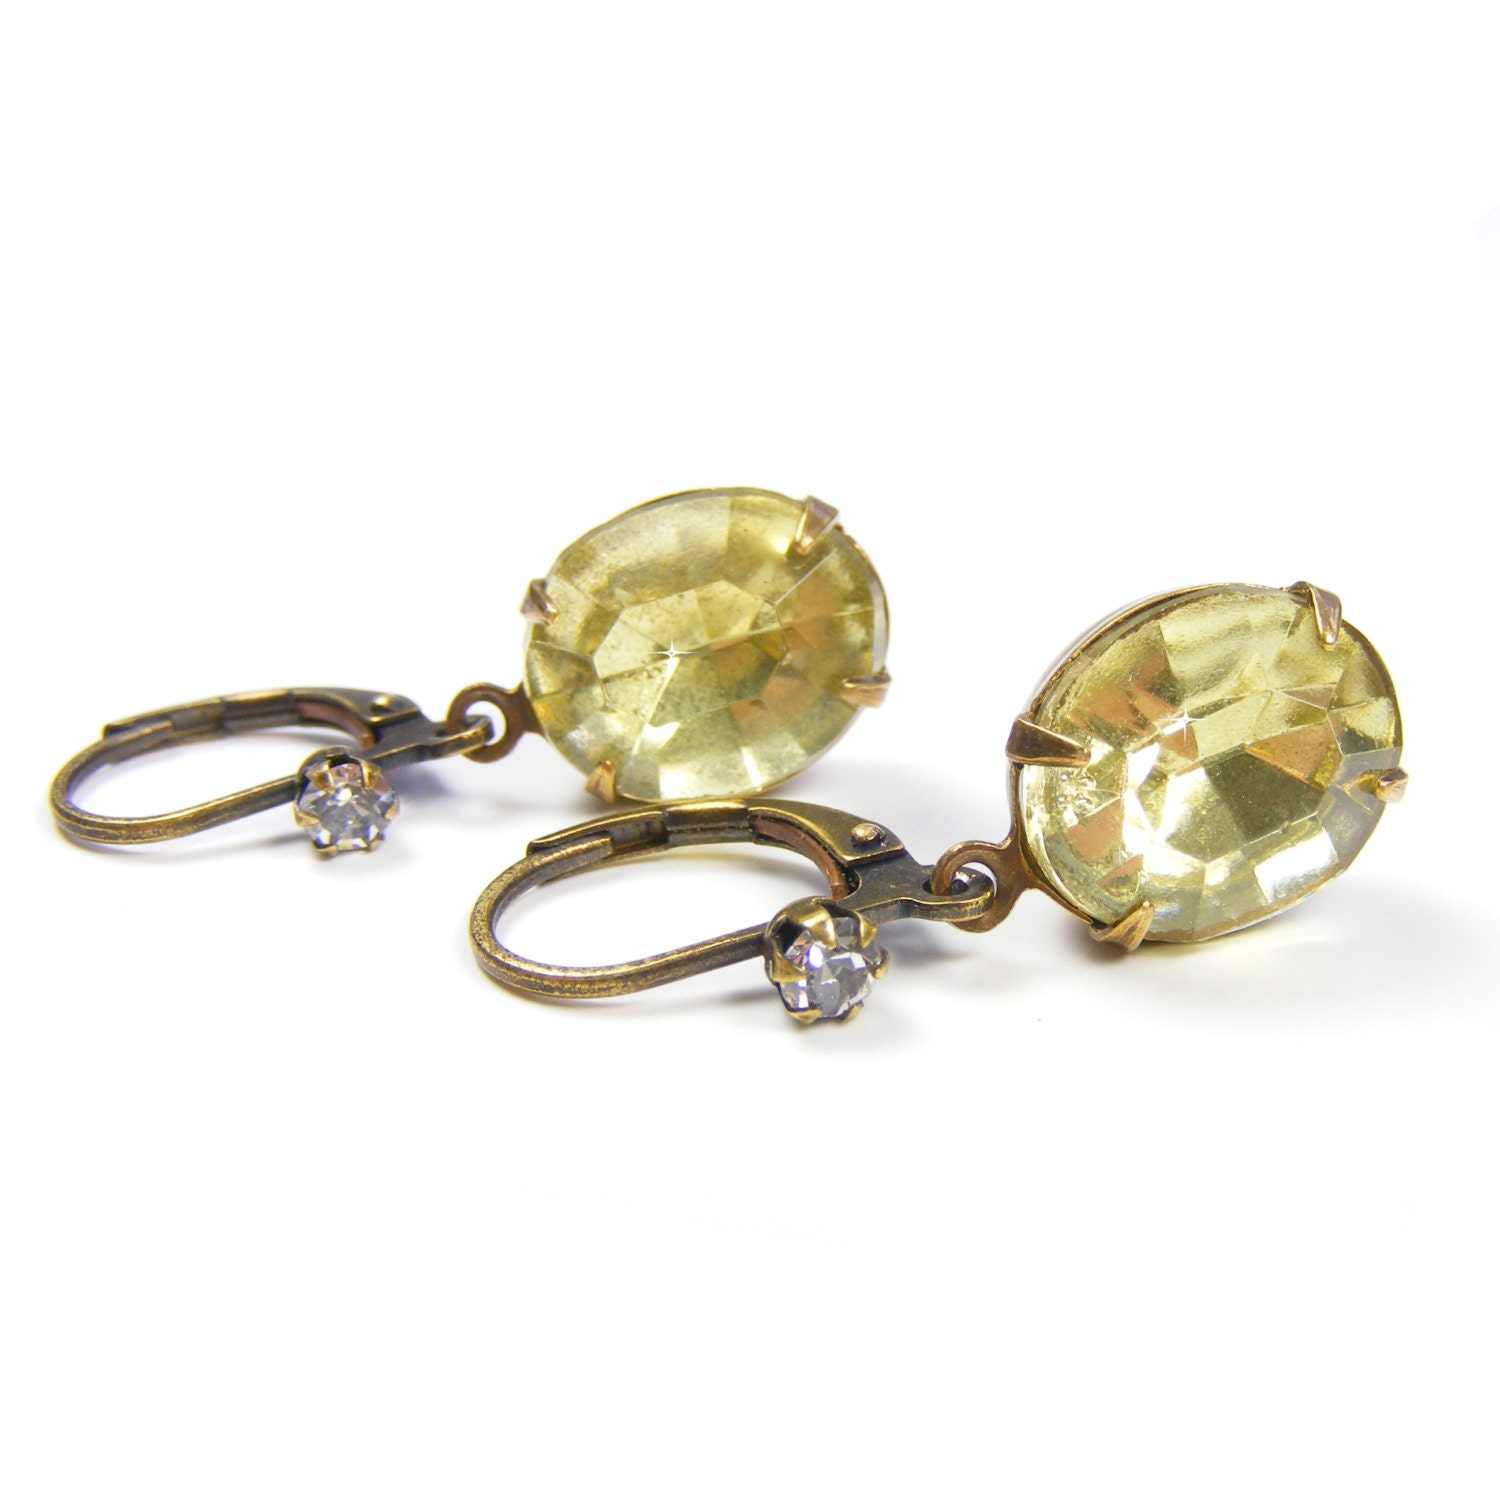 Lemon Rhinestone Drop Earrings, Genuine 1950s Vintage Crystal Jewels, Great Gatsby Style Vintage Inspired Jewellery